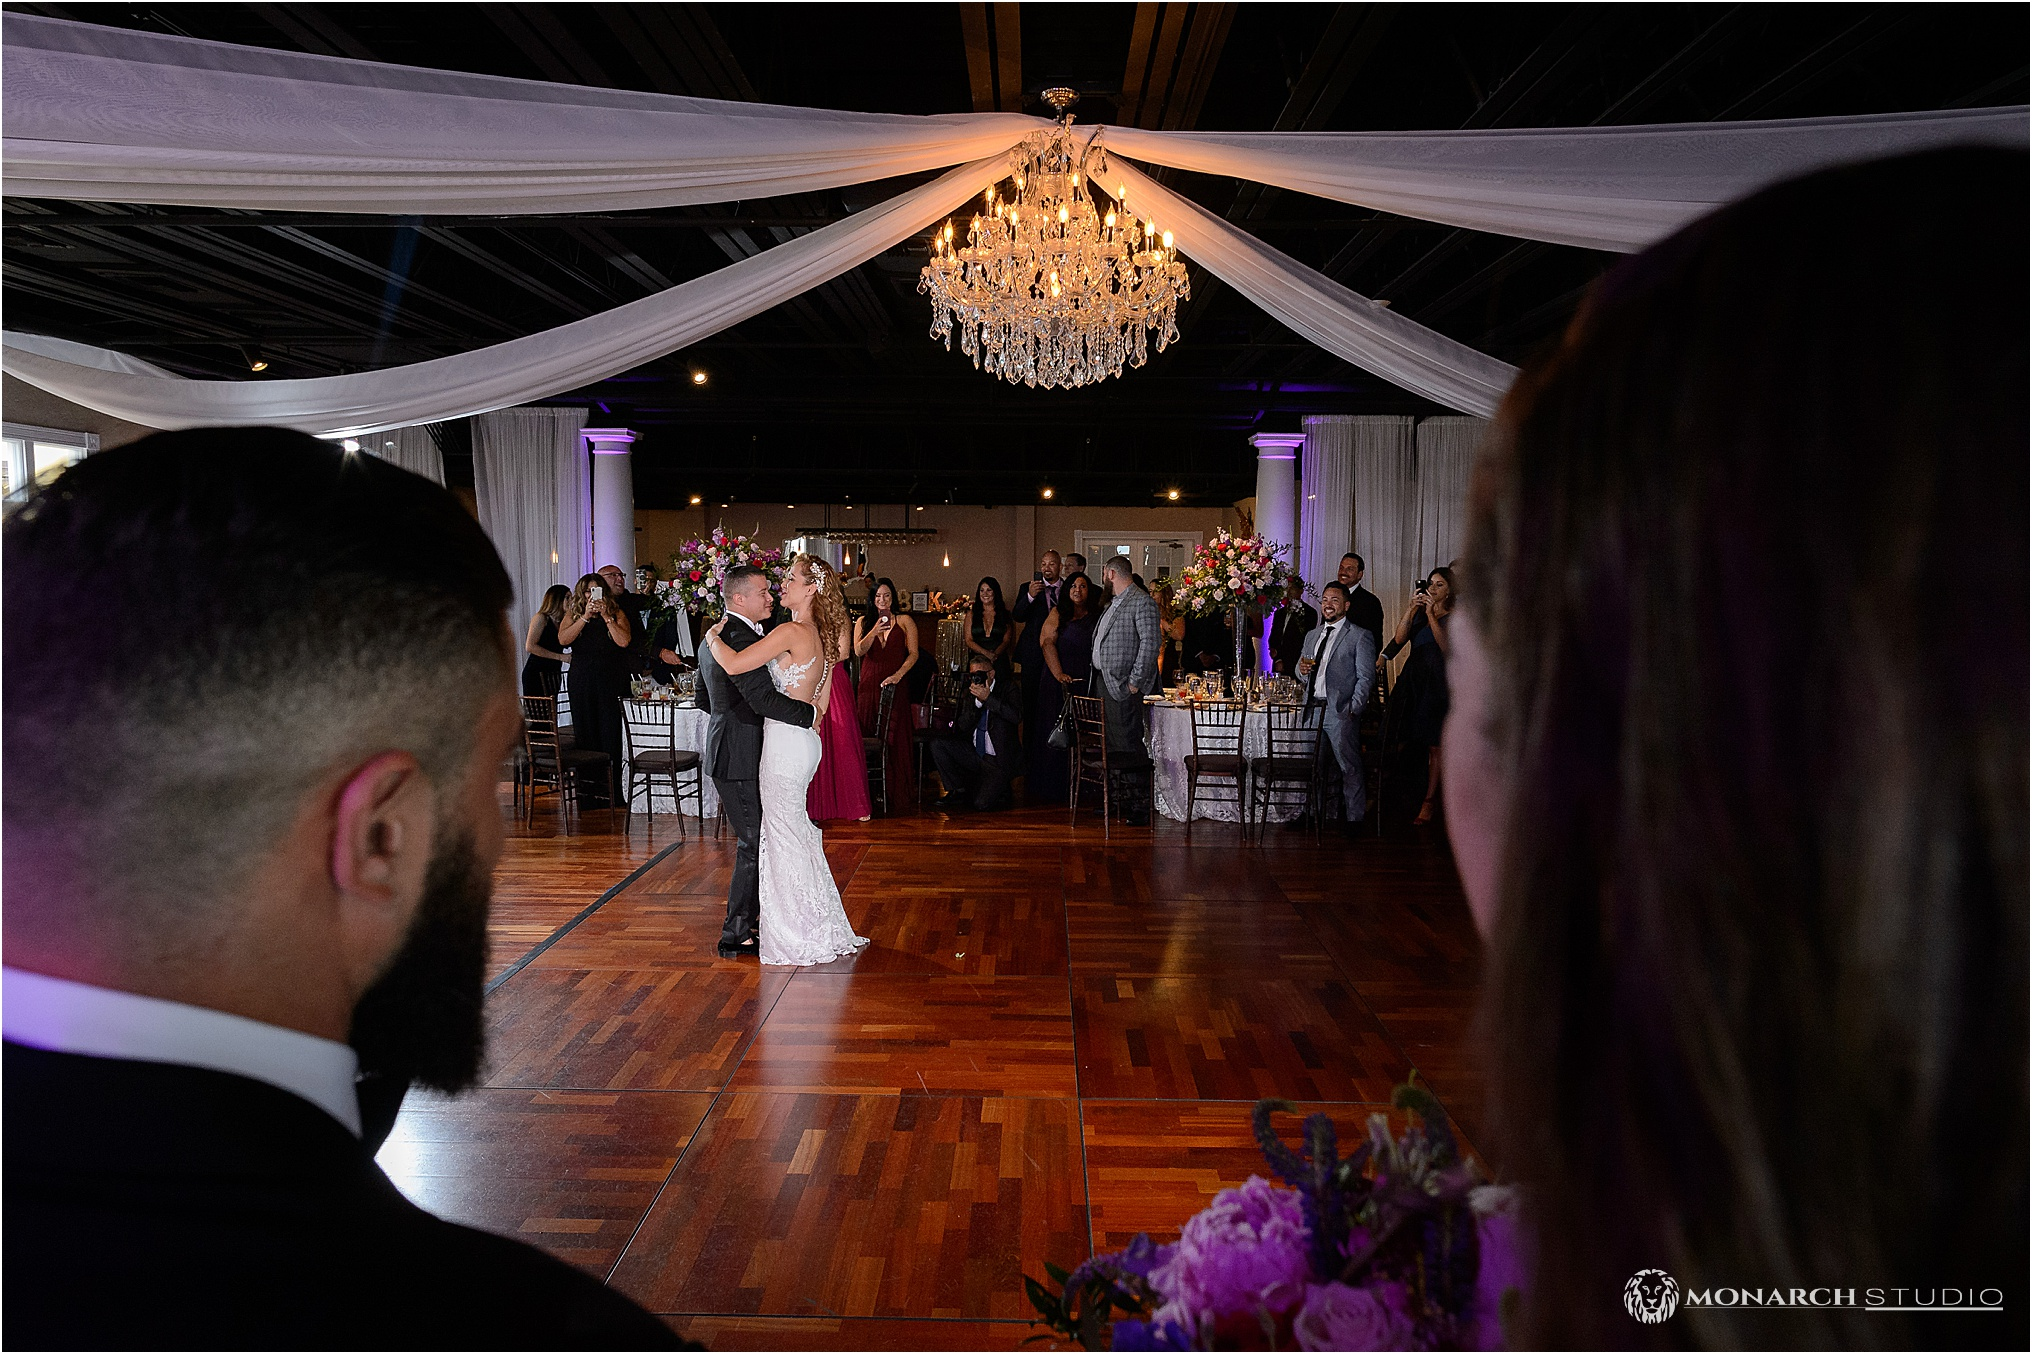 The-Whiteroom-Wedding-Photography-Saint-Augustine-Florida (126).jpg